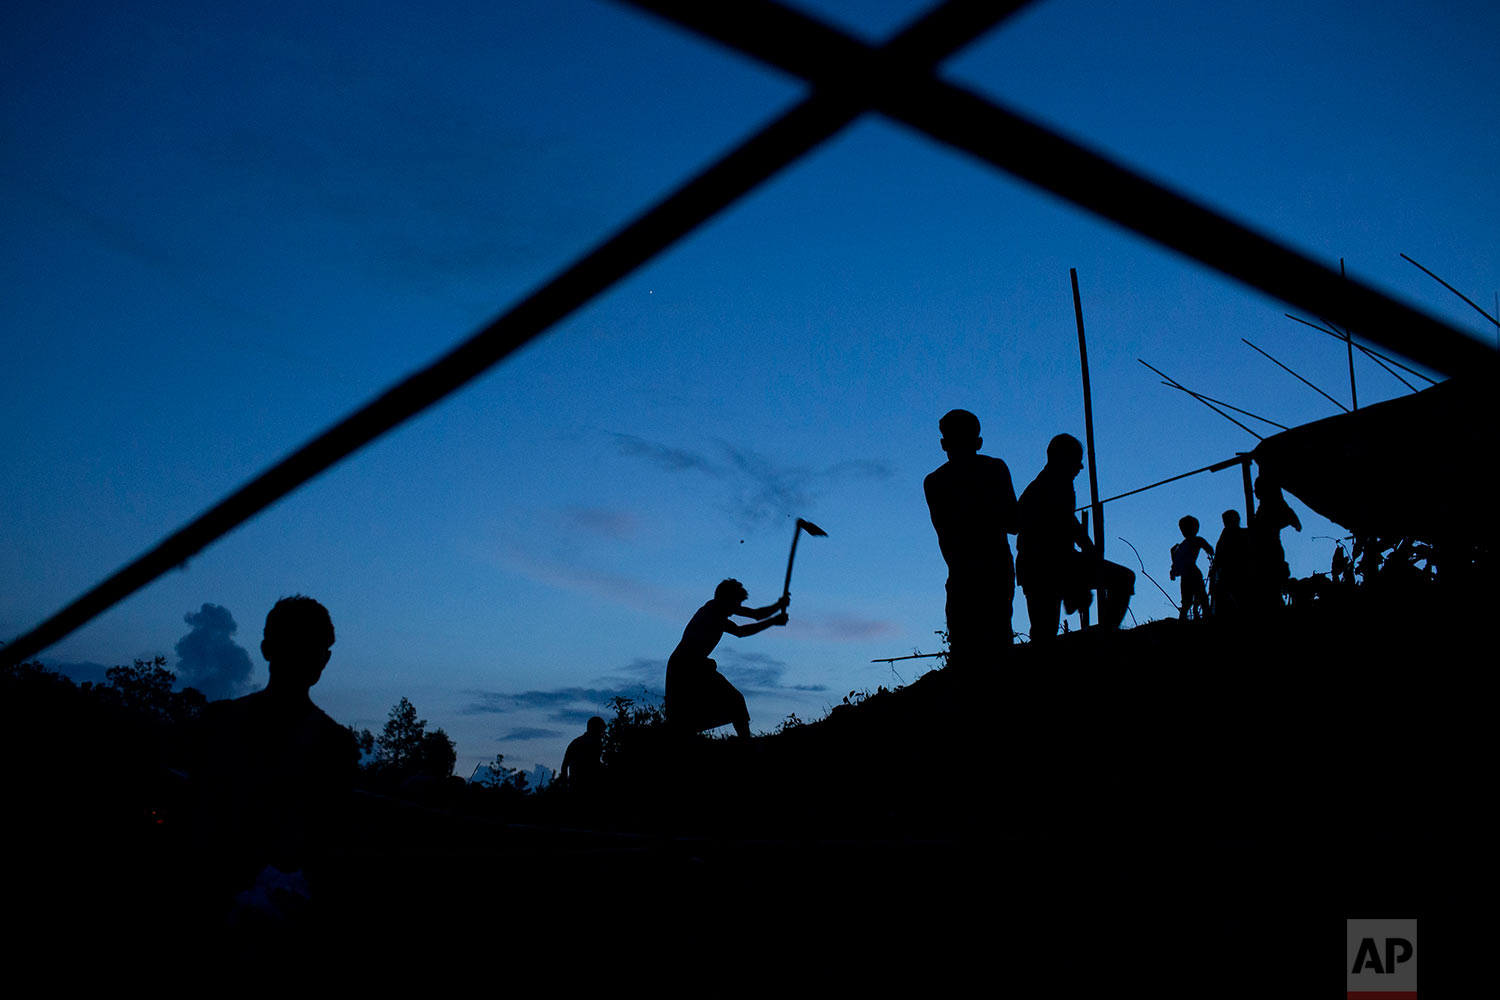 Rohingya ethnic minority, who have just crossed over to Bangladesh from Myanmar, build makeshift tents near Cox's Bazar's Gundum area, Saturday, Sept. 2, 2017. (AP Photo/Bernat Armangue)